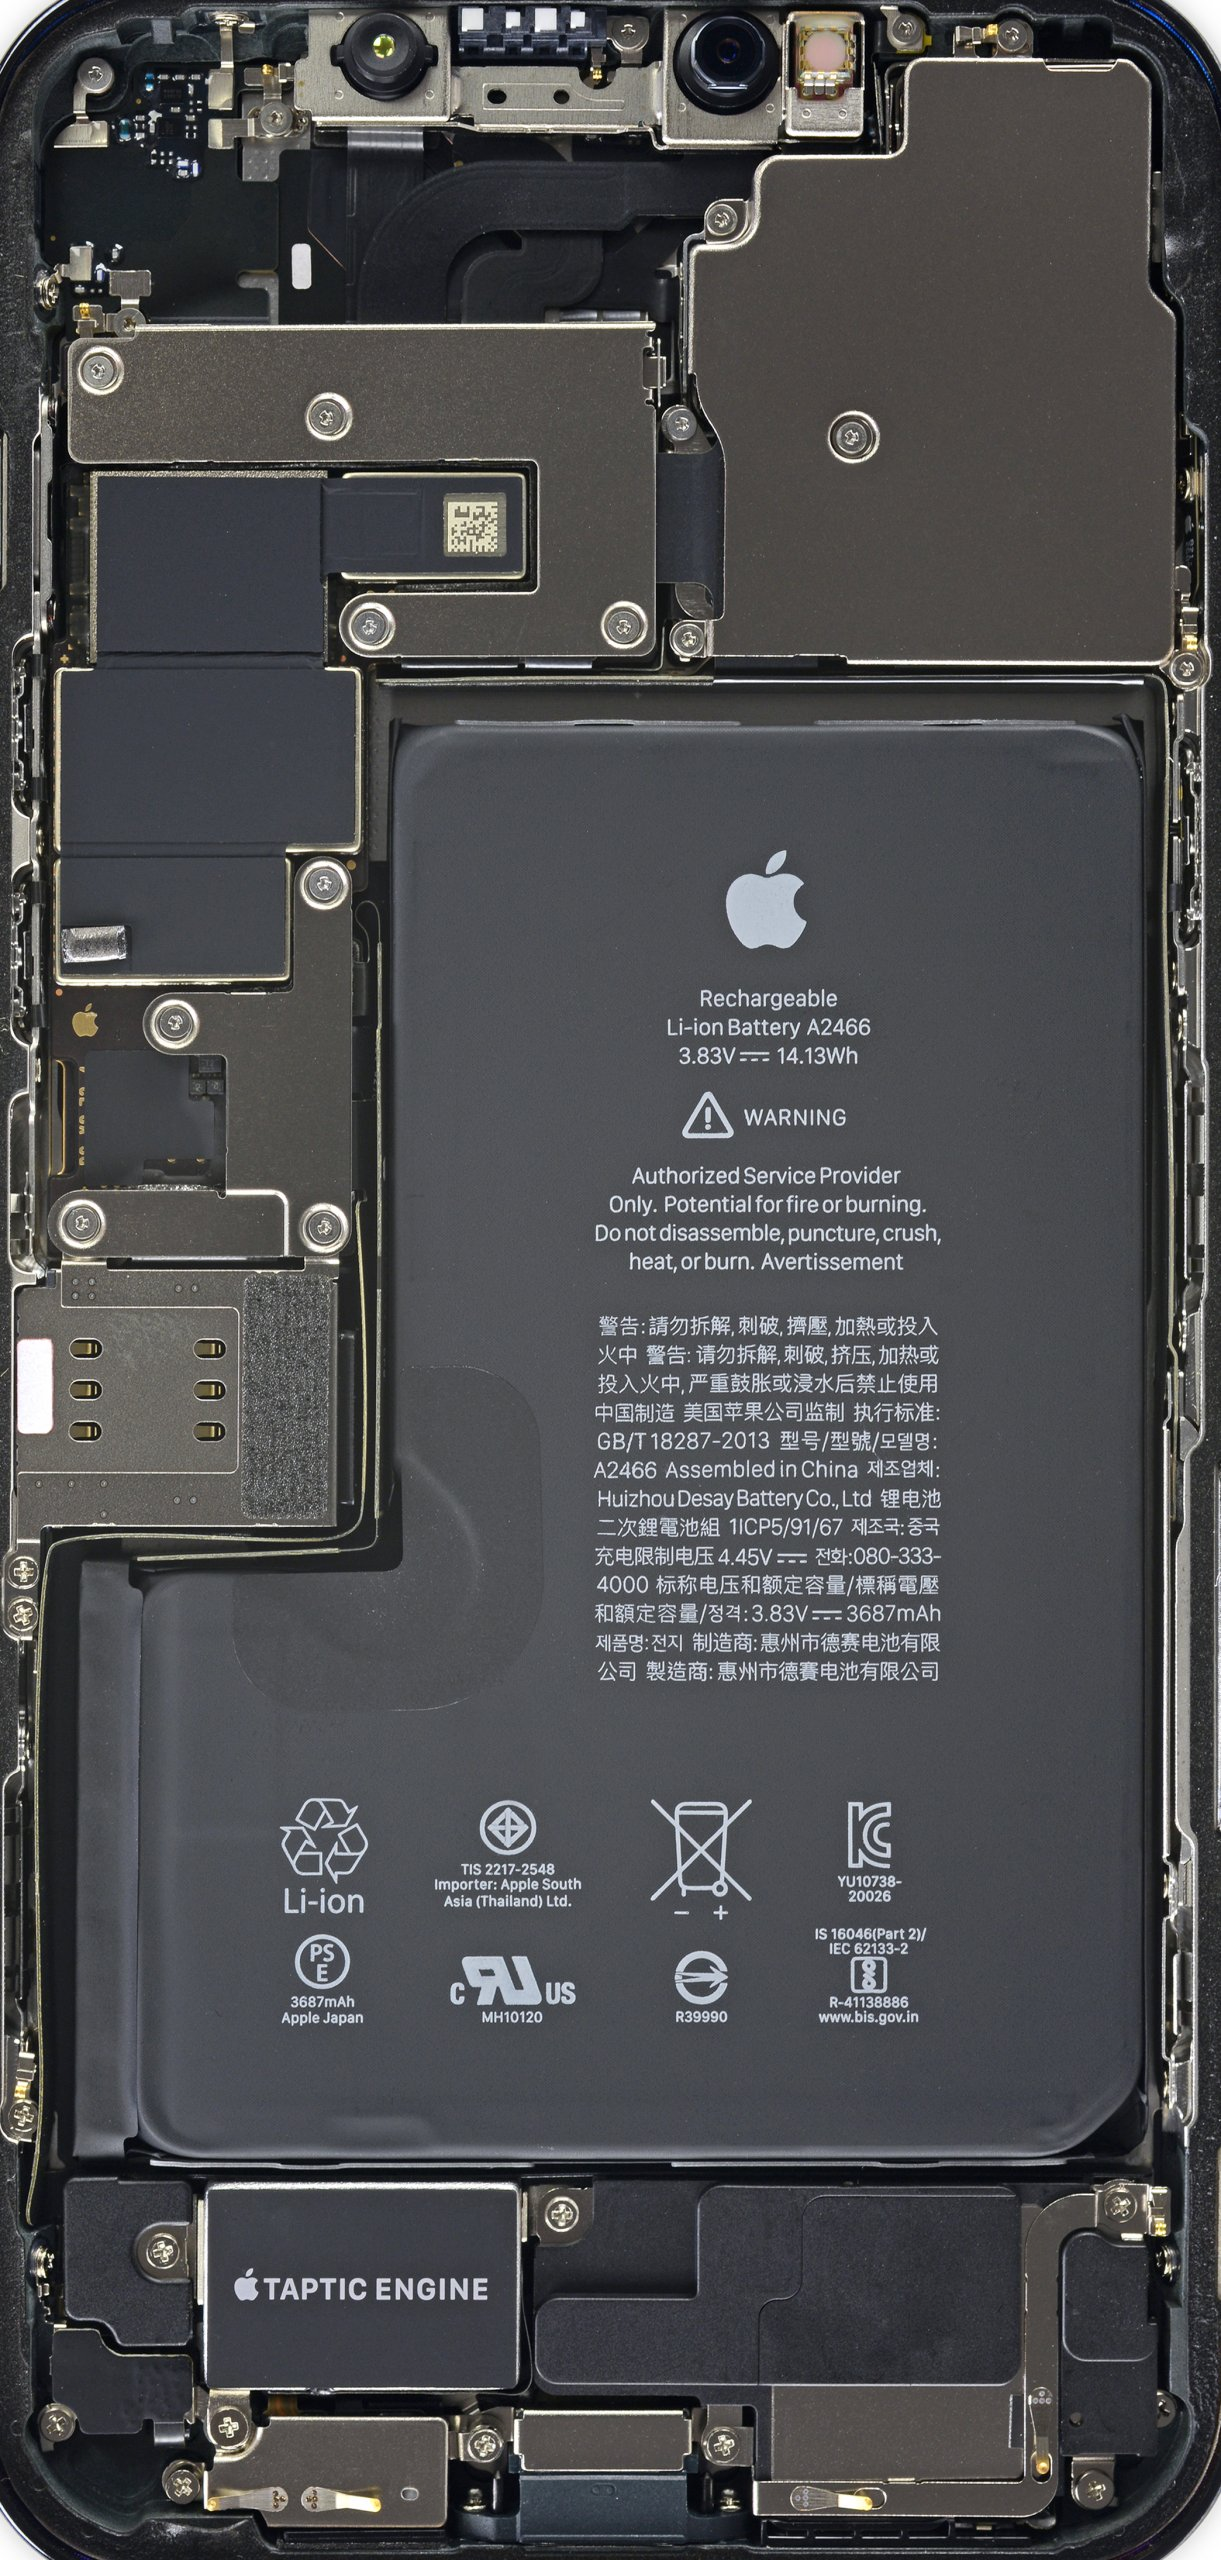 Internals of the iPhone 12 Pro Max